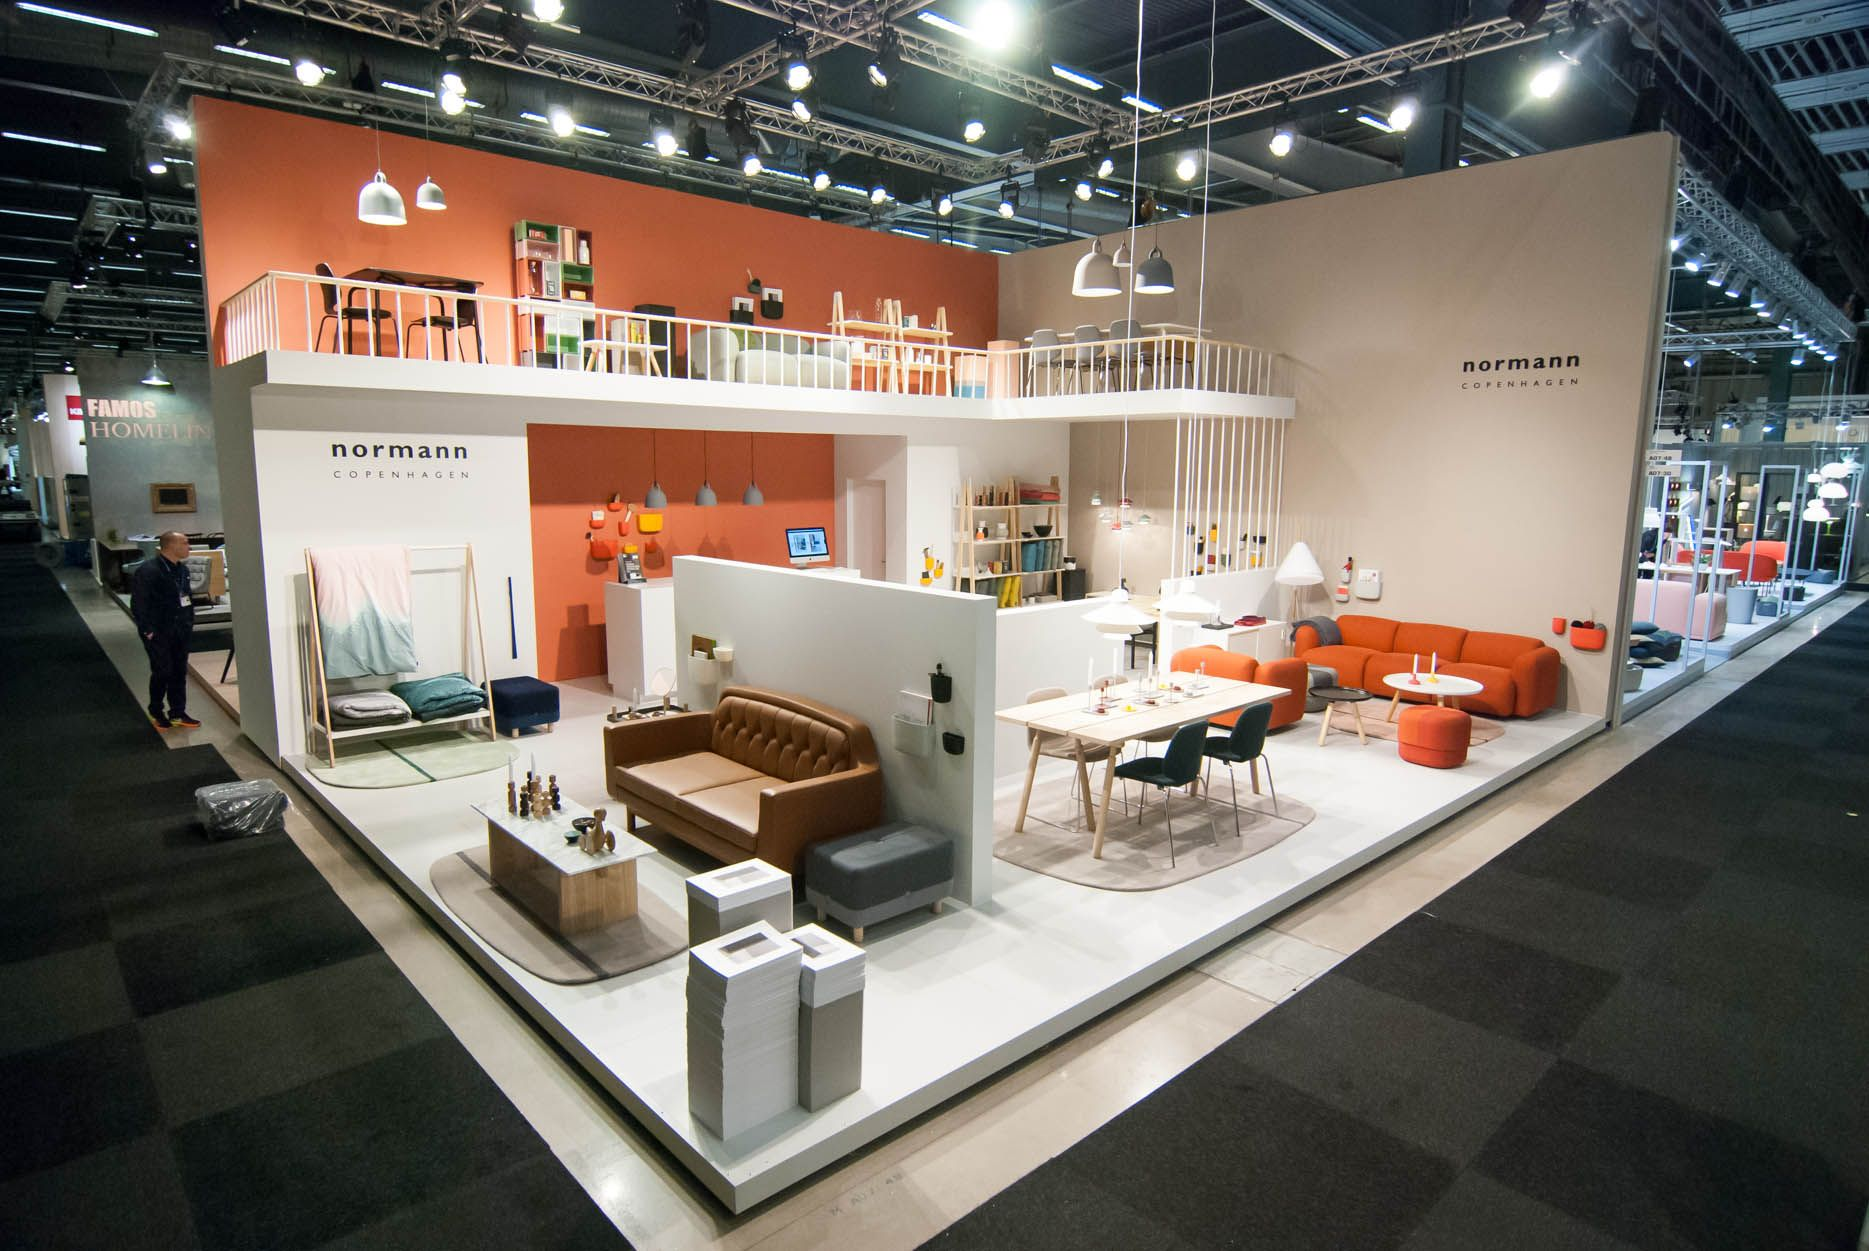 stockholm furniture fair 2014 normann copenhagen www